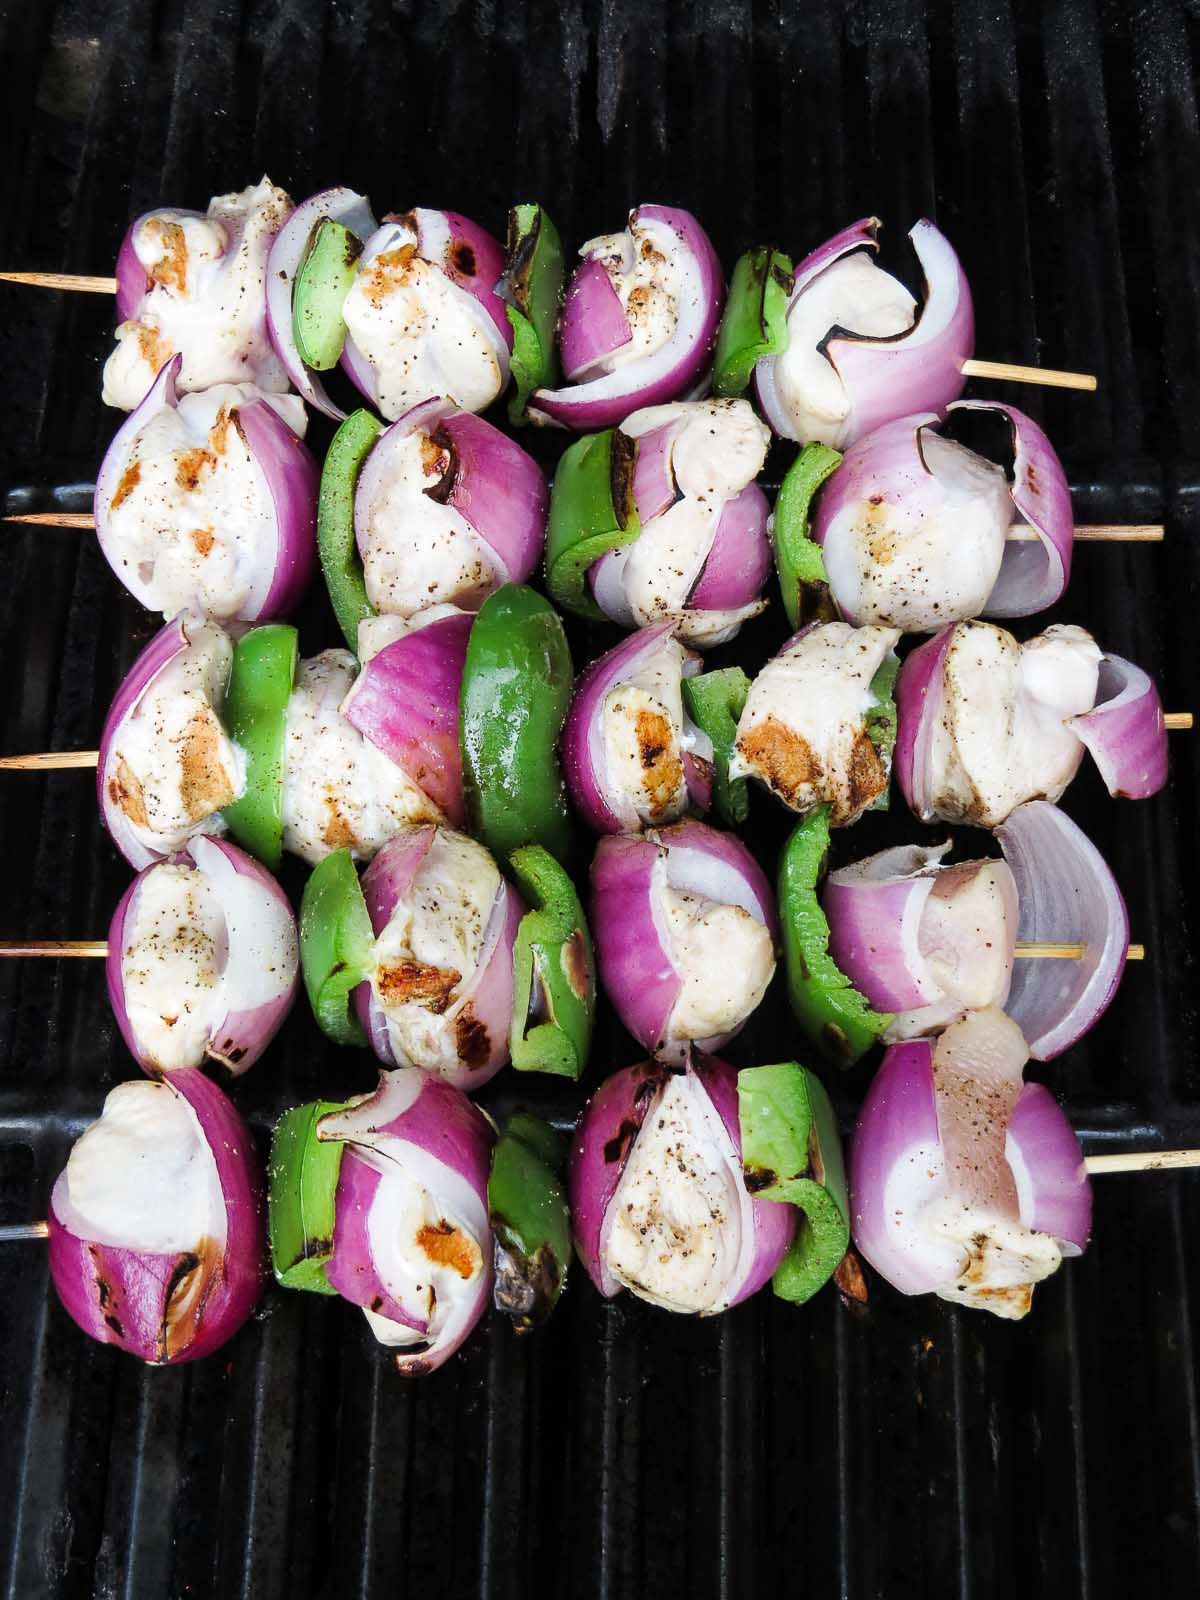 Grill Ready Vegetable & Chicken Skewers - Skip the costly store bought skewers and make your own Vegetable Chicken Skewers! Choose your favourite veggies, skewer them together with chicken, season and grill for an amazing main dish recipe great for two or many! Bonus points if you make extra and toss into a salad for lunch or a picnic the next day!